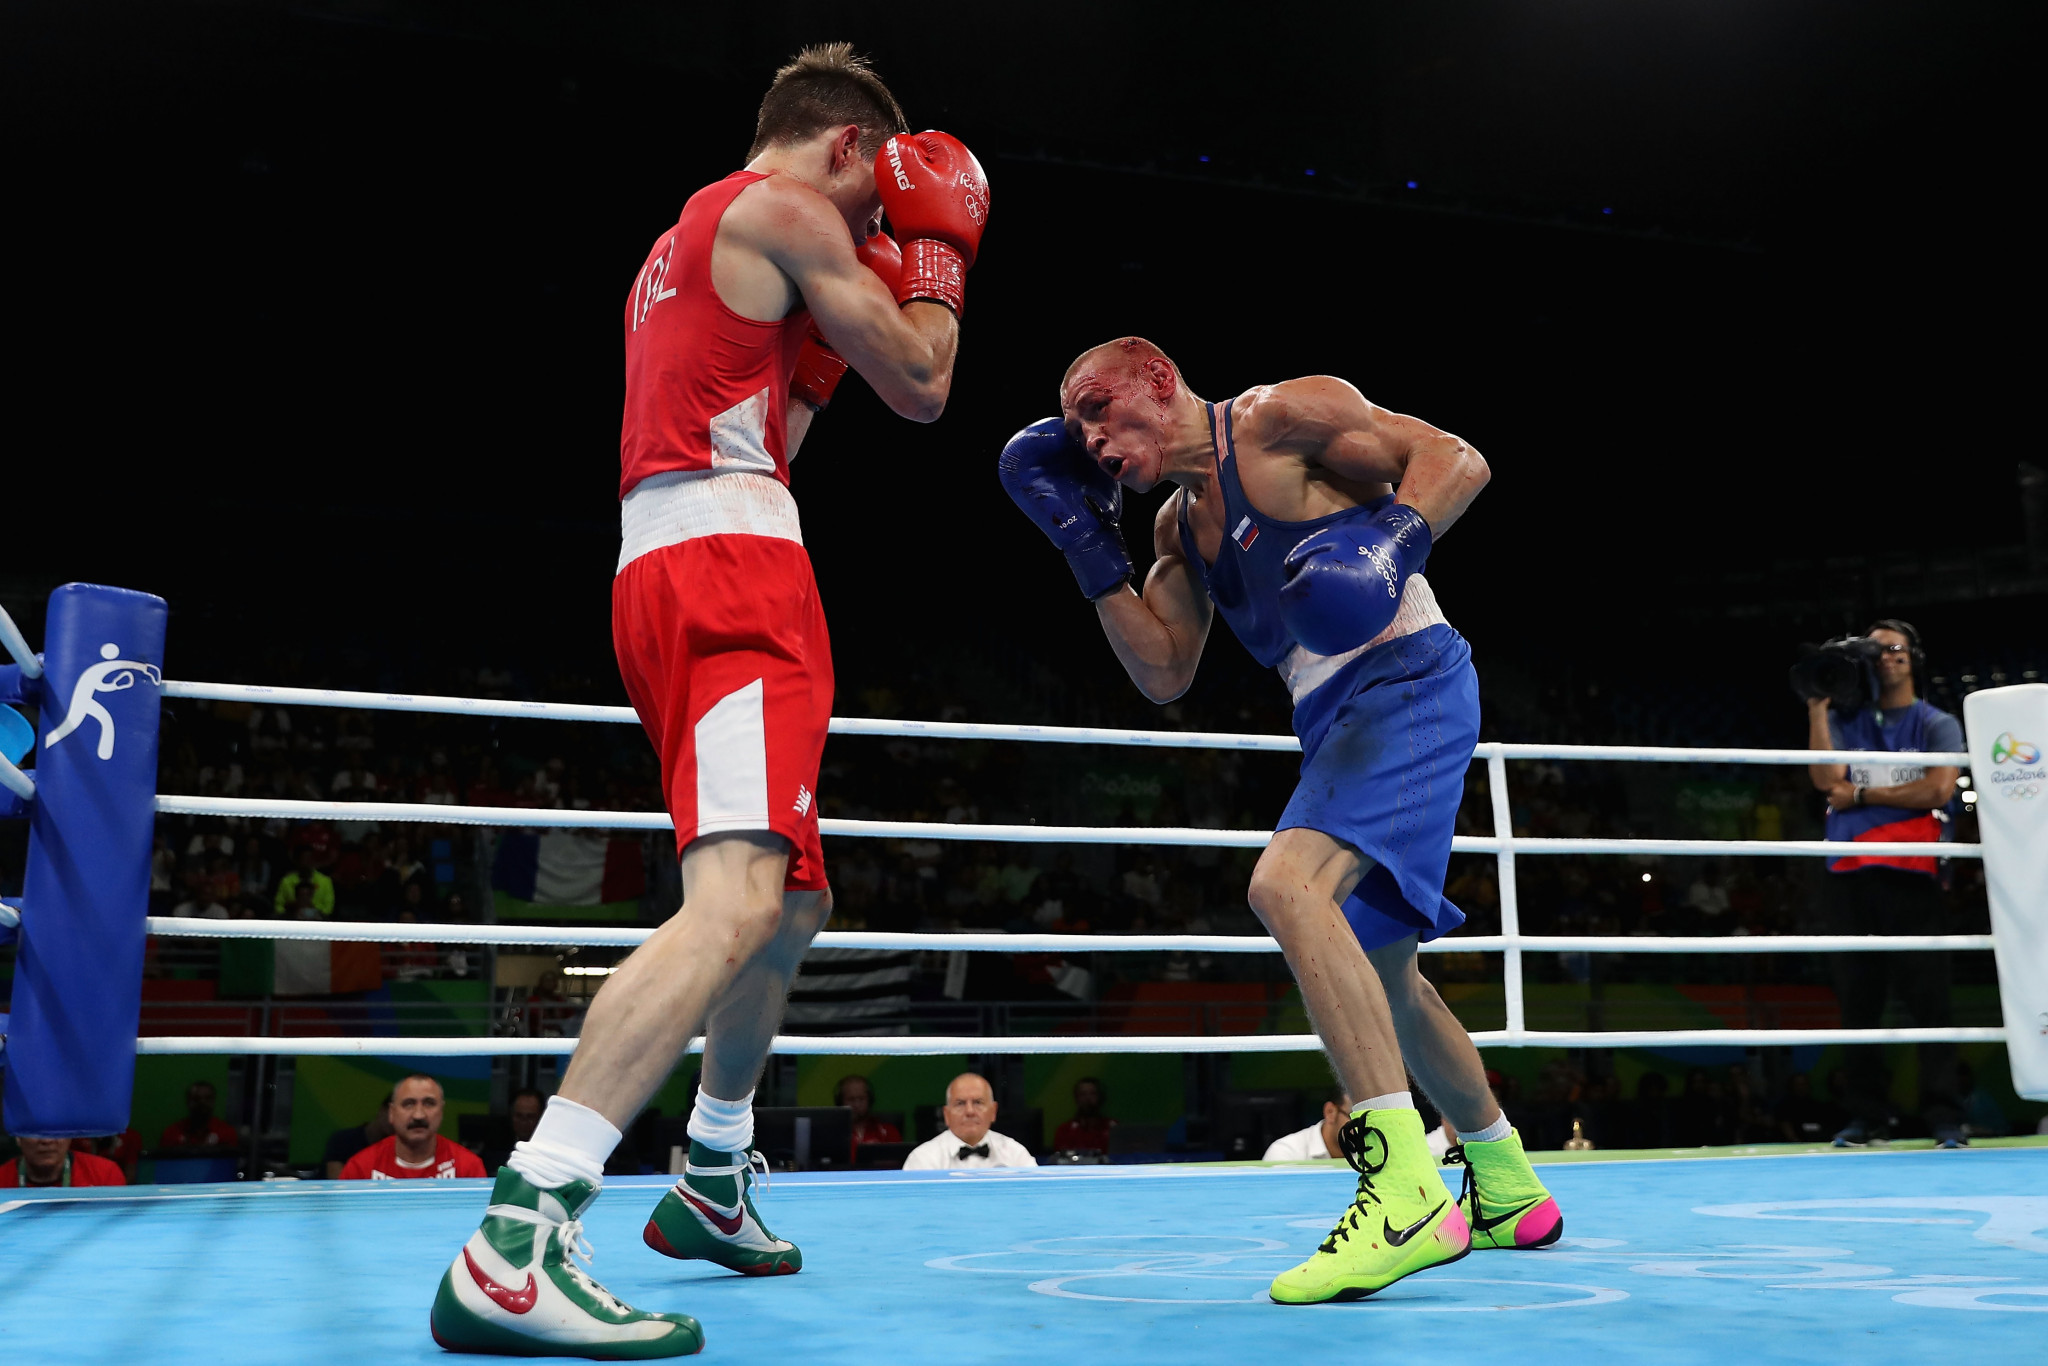 The boxing competition at Rio 2016 was hit by controversies involving judging ©Getty Images